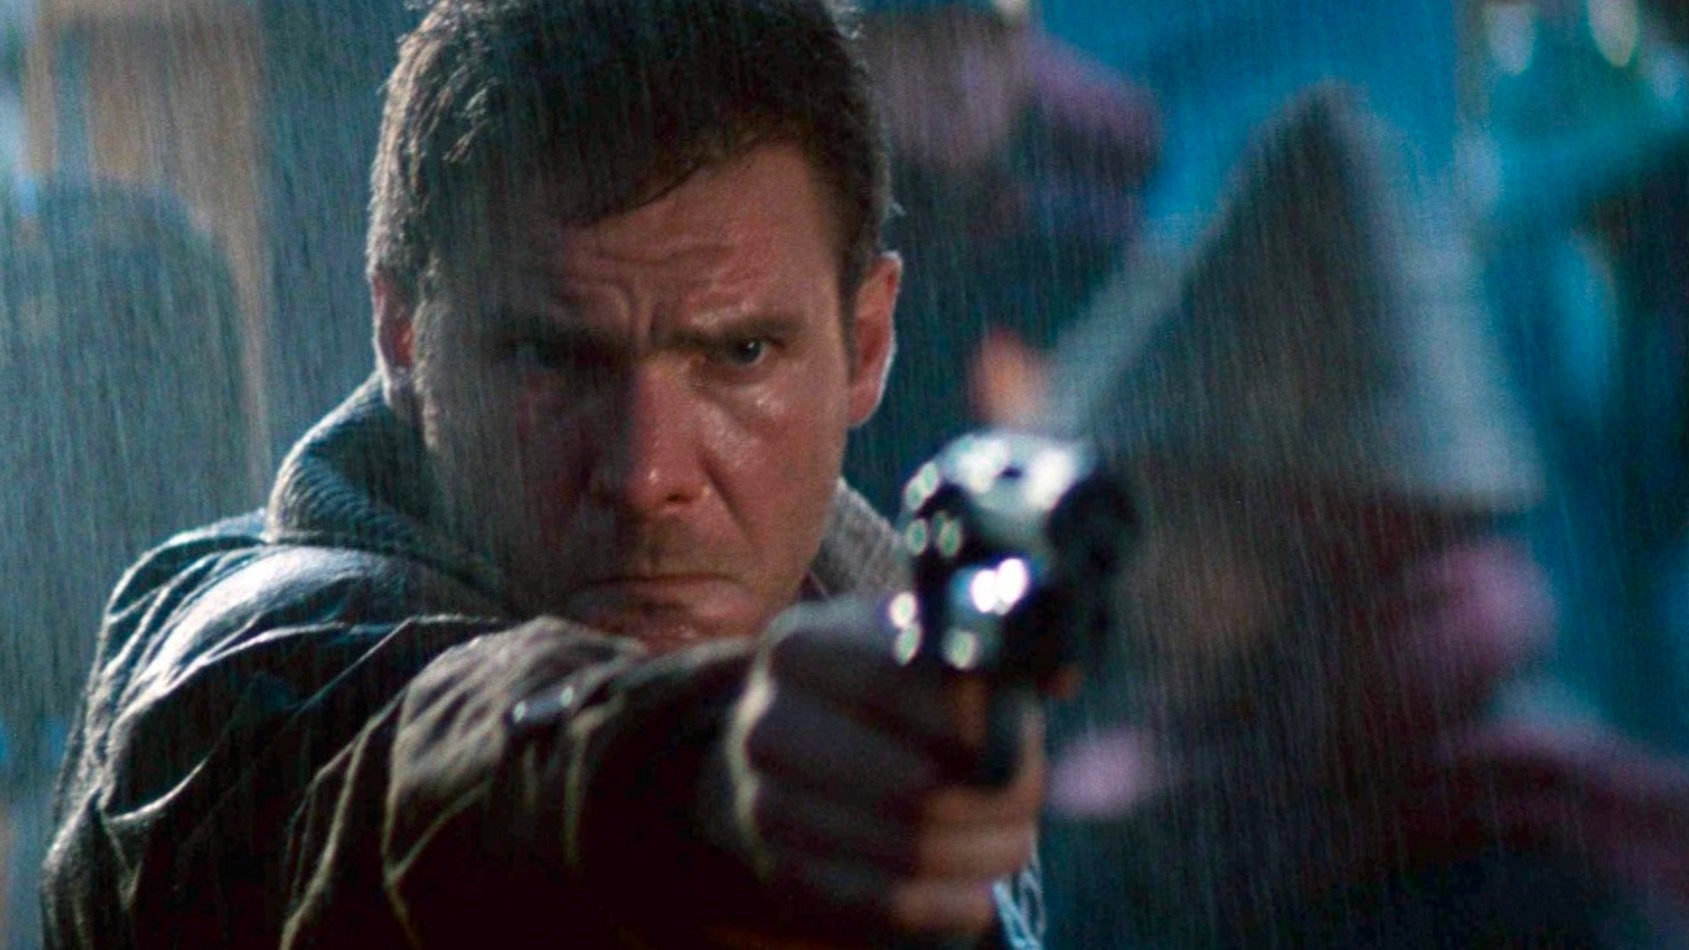 We Made Two People Watch Blade Runner for The First Time, And Here's What They Thought